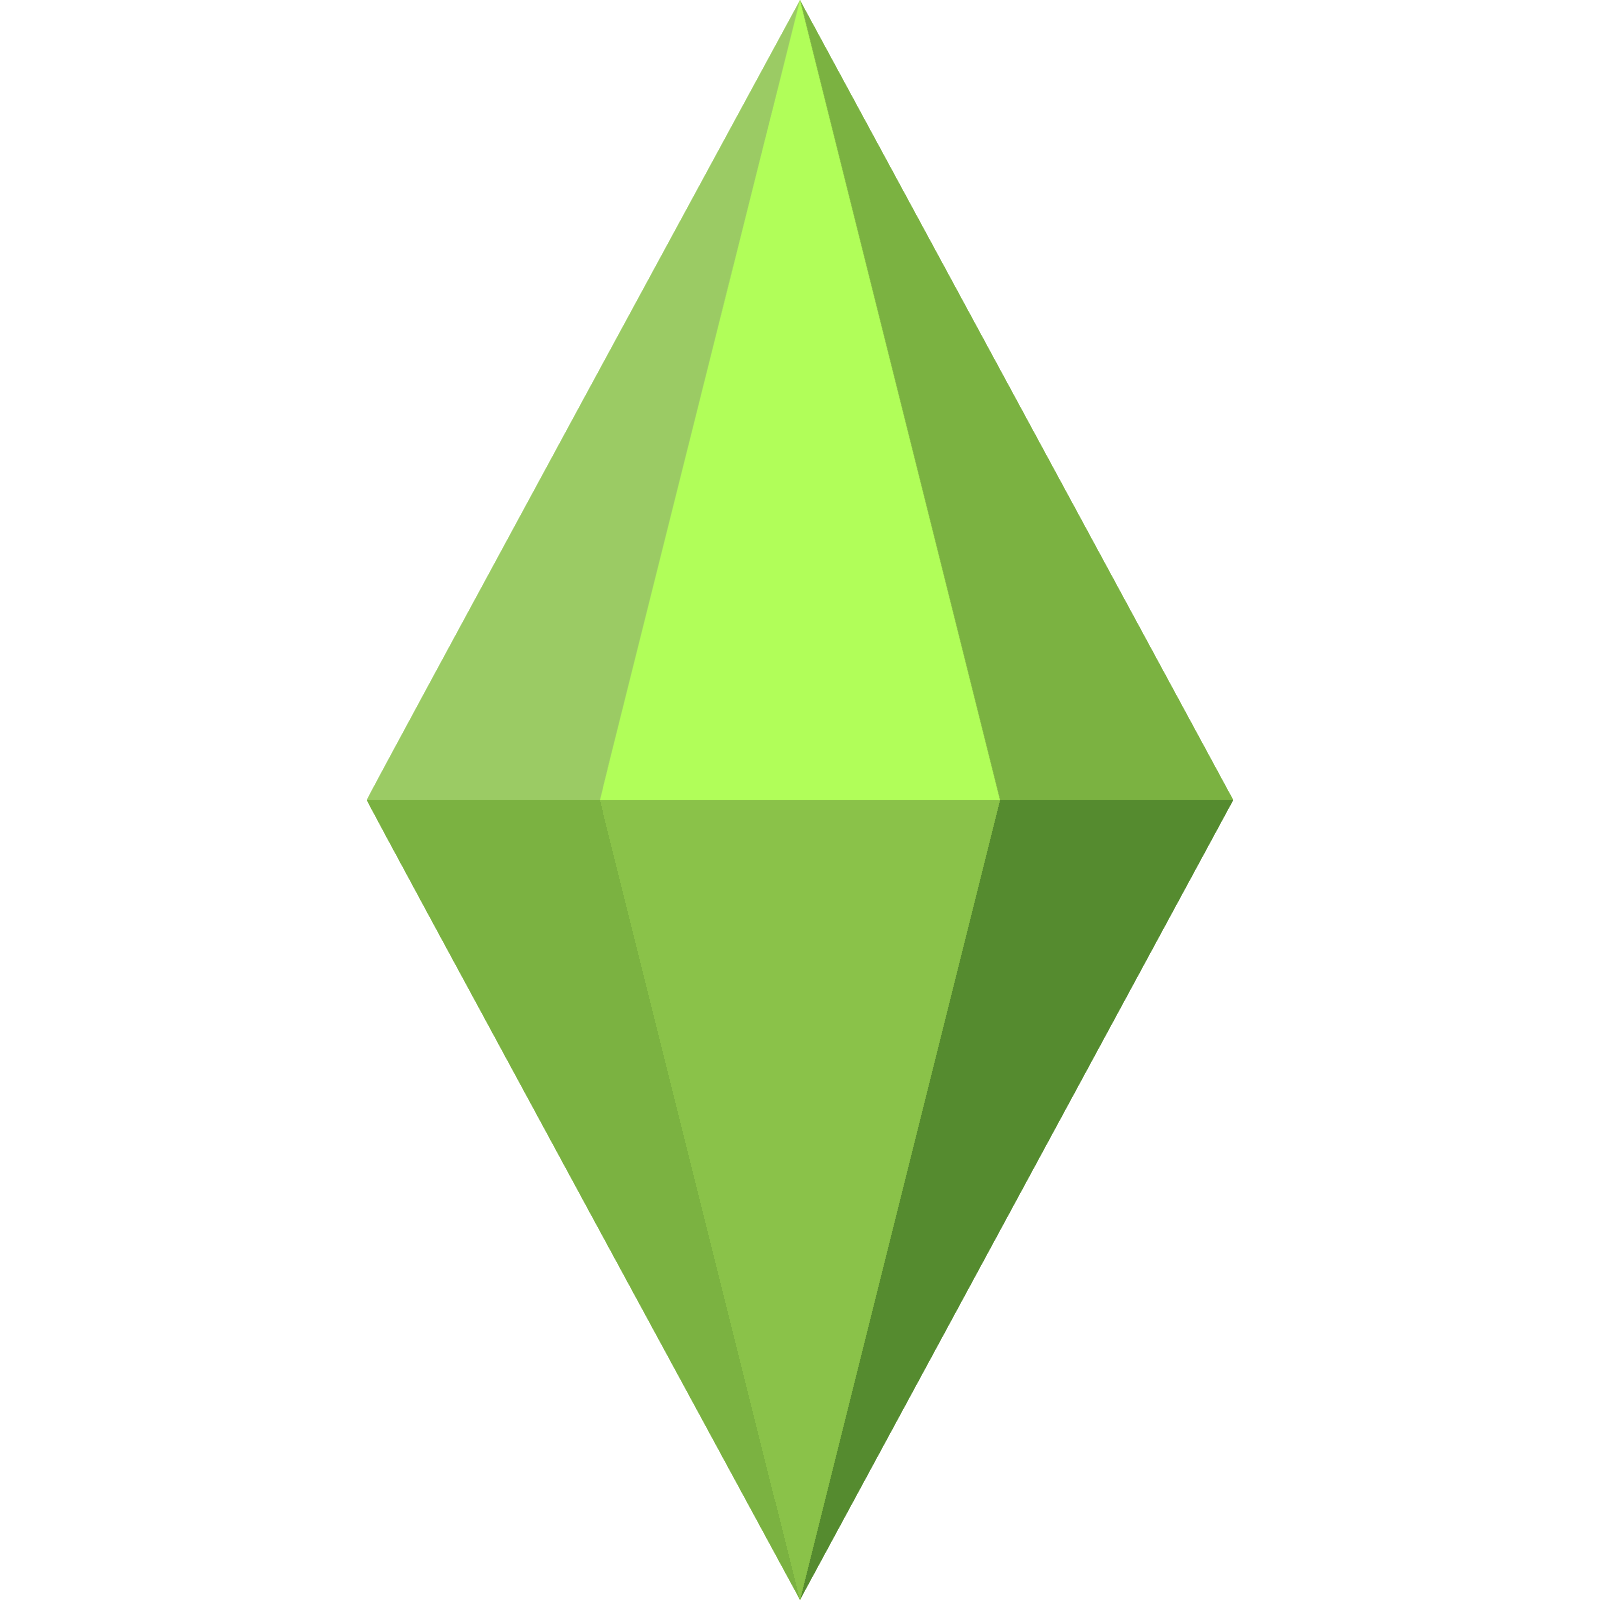 Plumbob Png 52 images 1600x1600